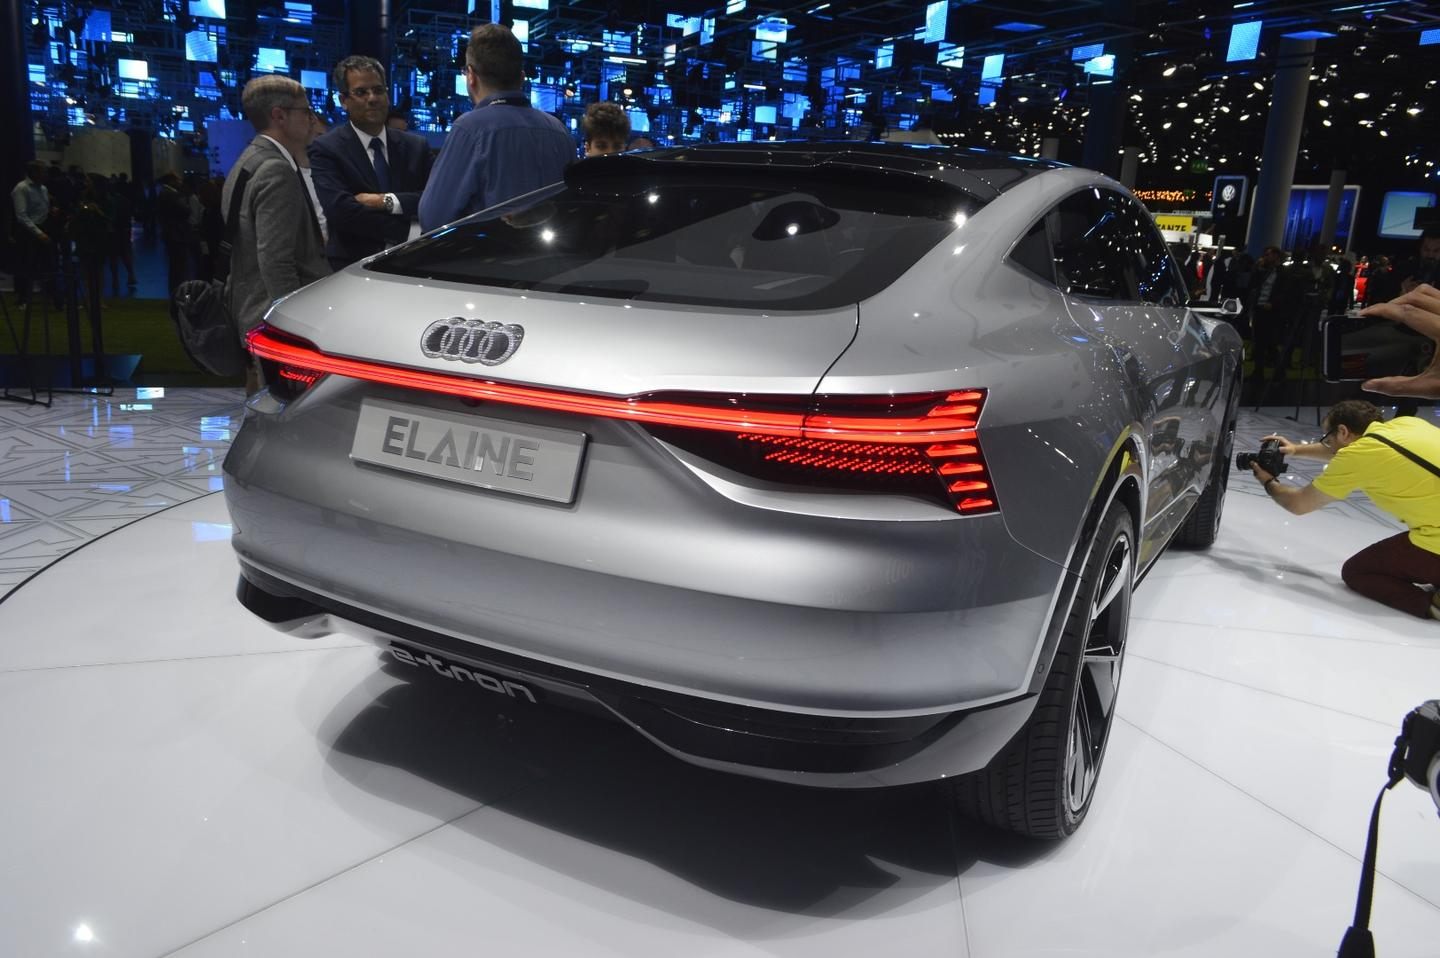 The shapely rear end of the Audi Elaine concept